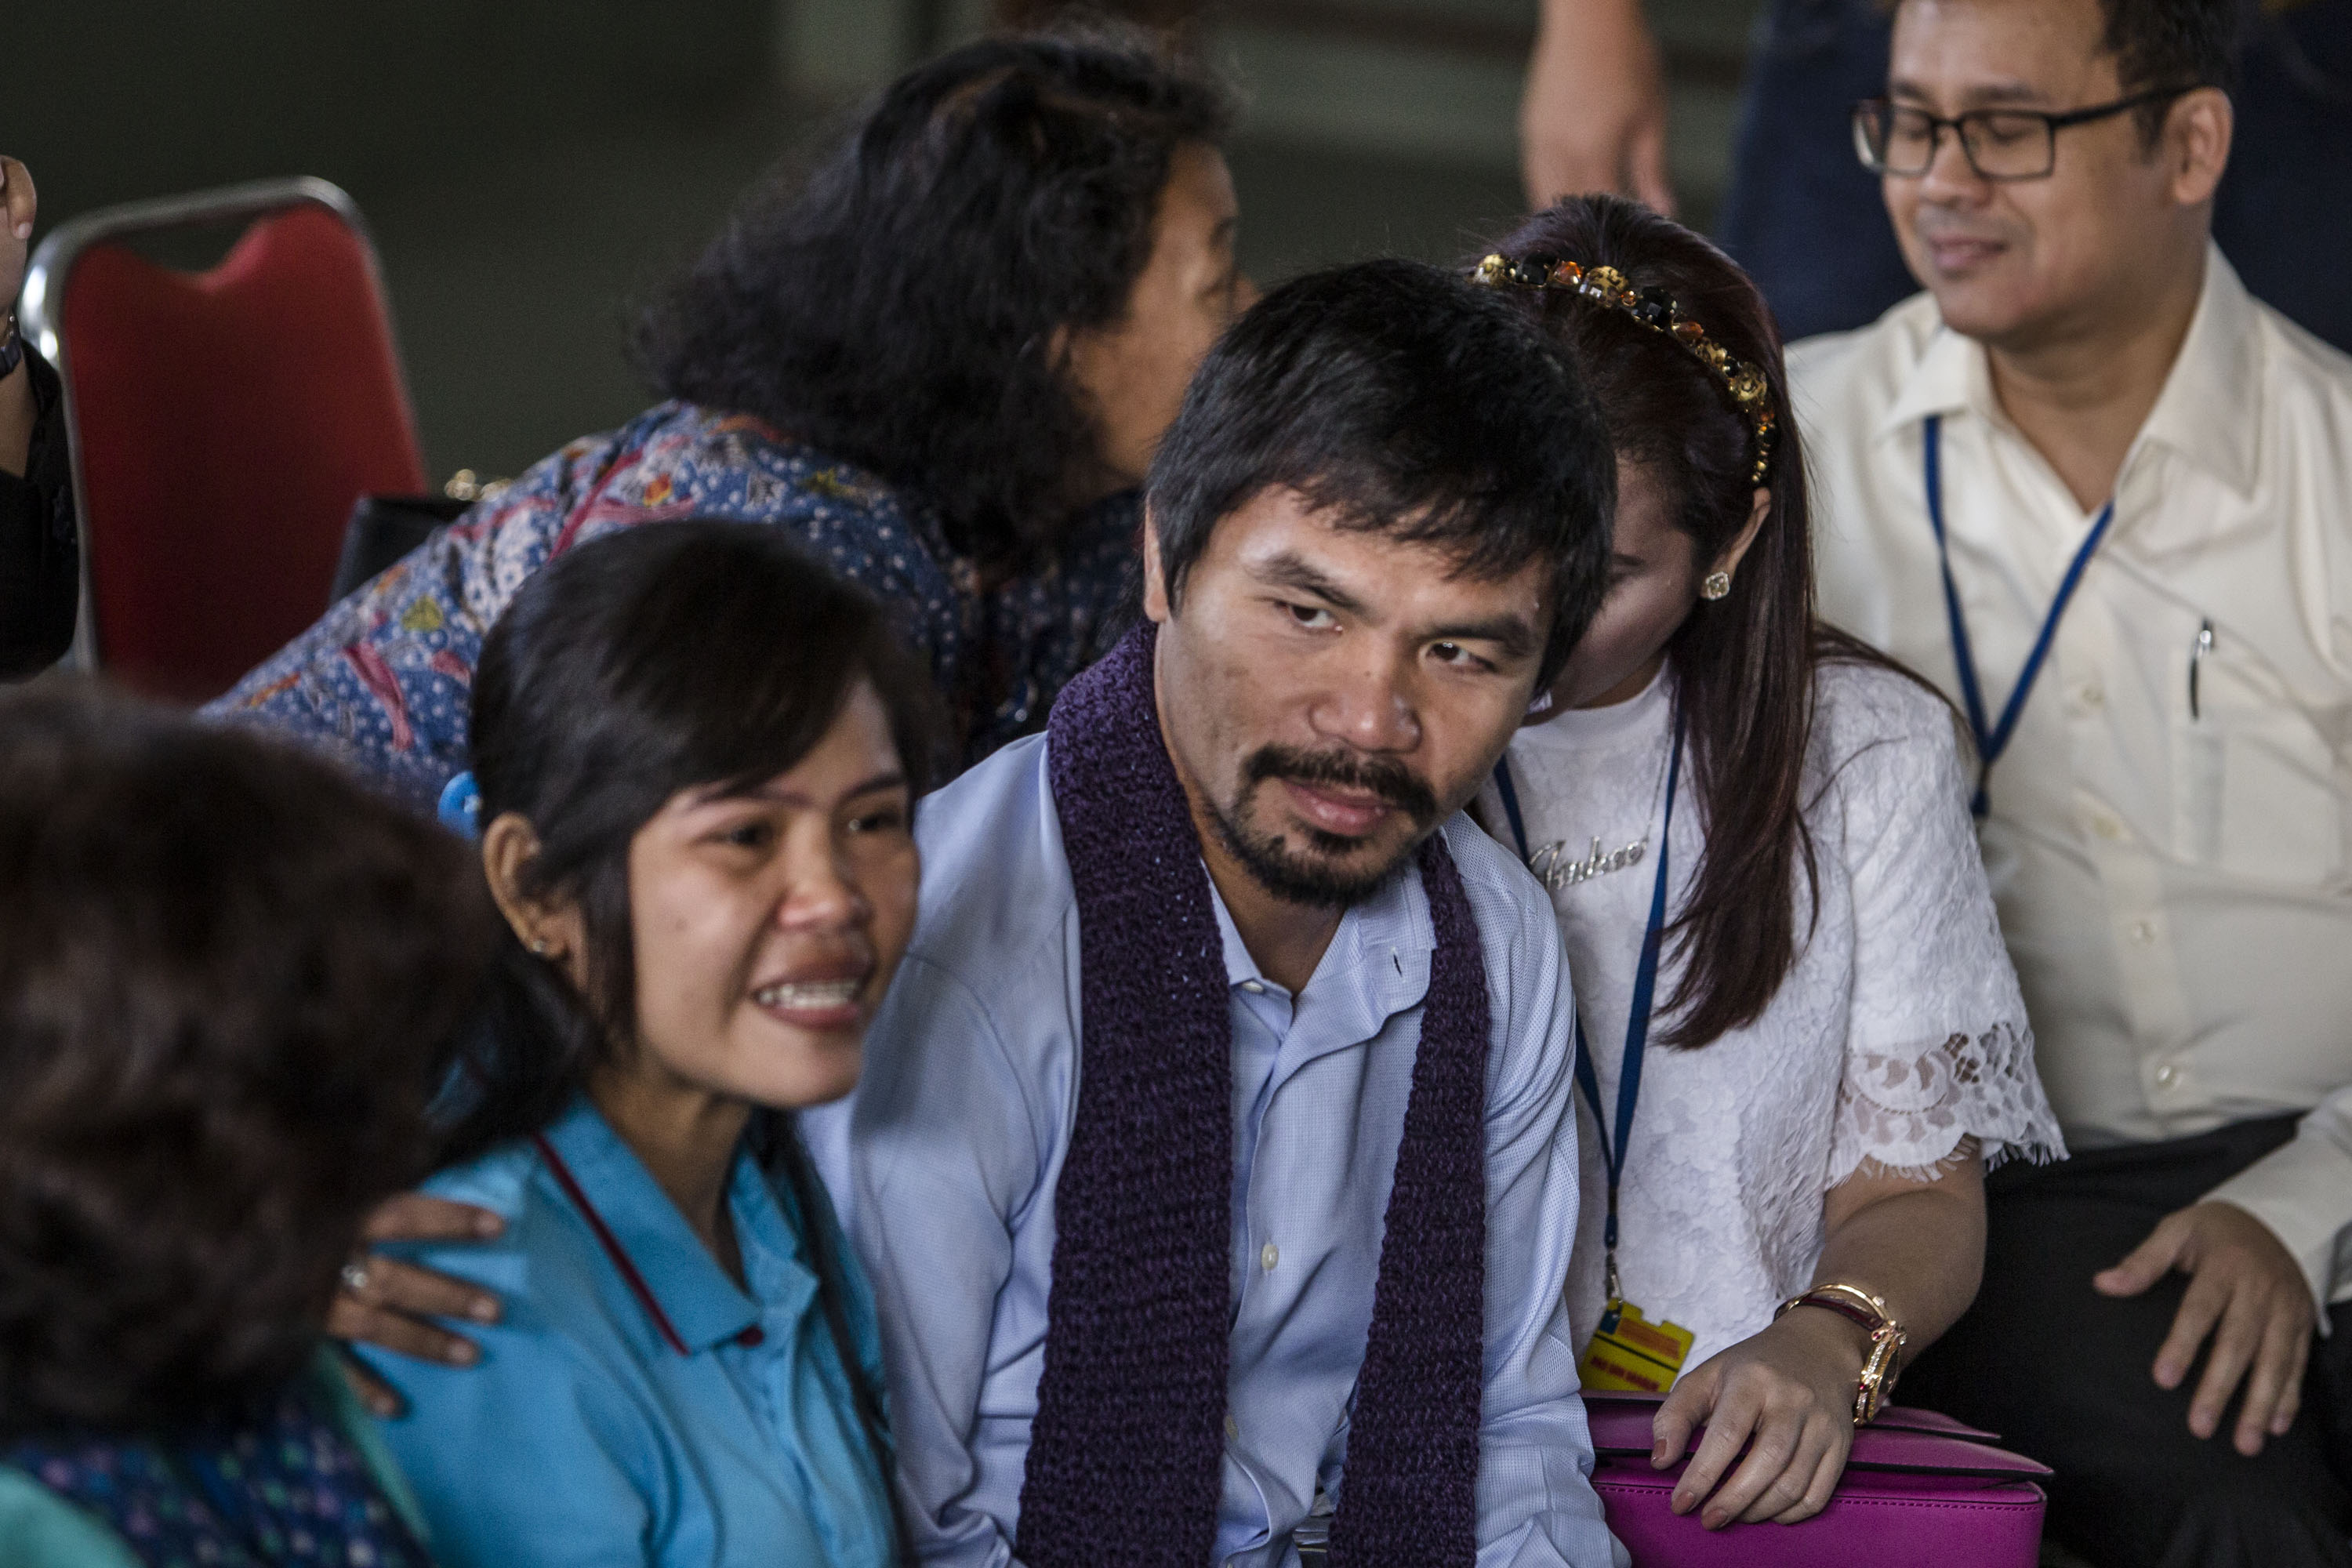 Filipino boxing icon Manny Pacquiao, center, and his wife Jinkee meet convicted drug trafficker Mary Jane Veloso of the Philippines during a visit at Wirogunan prison on July 10, 2015, in Yogyakarta, Indonesia